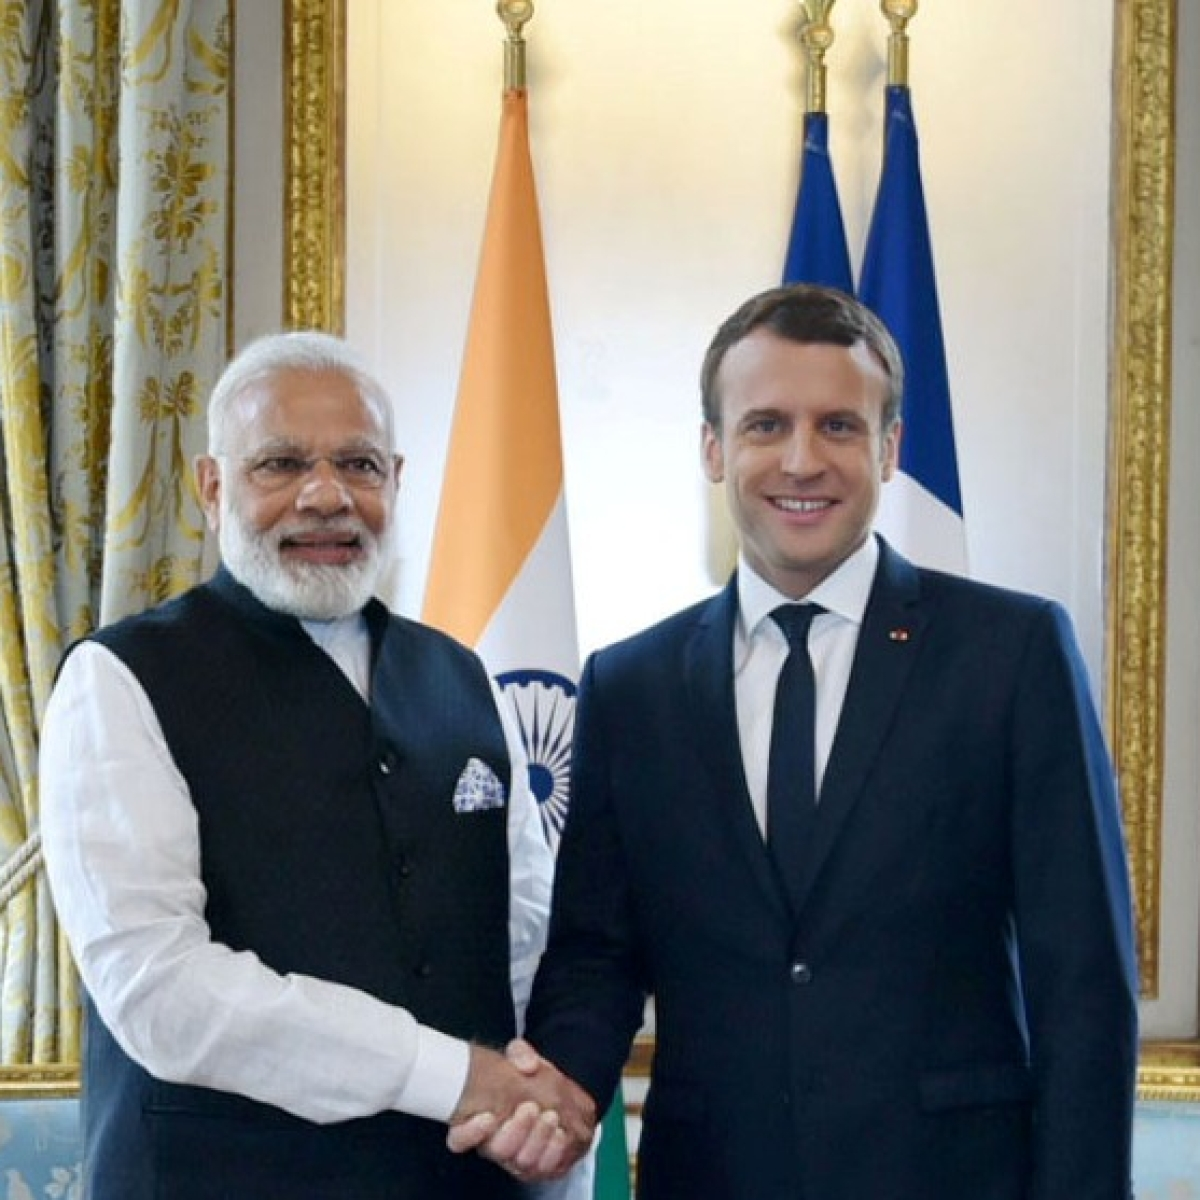 COVID-19: France to supply oxygen generators, liquid oxygen, ventilators to India